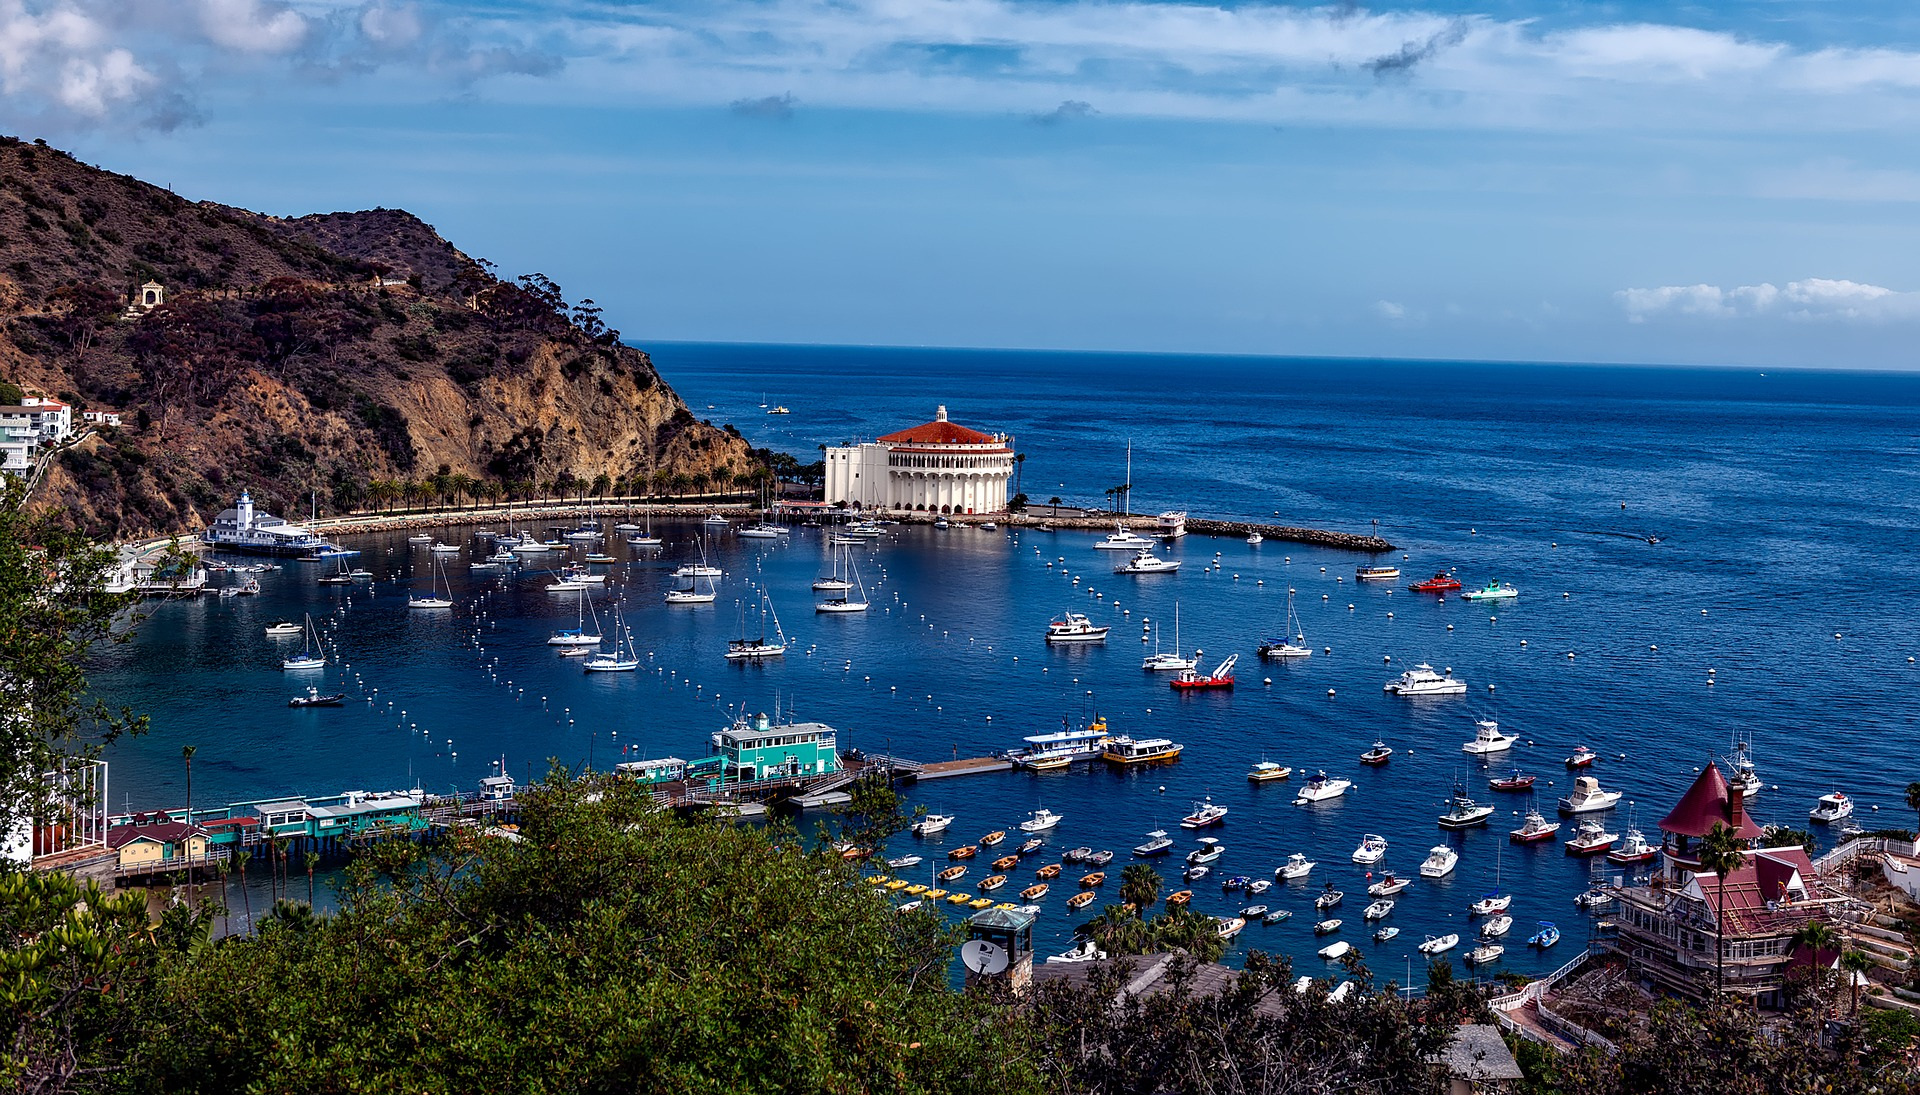 Catalina Island - Does weather affect fixed wireless?